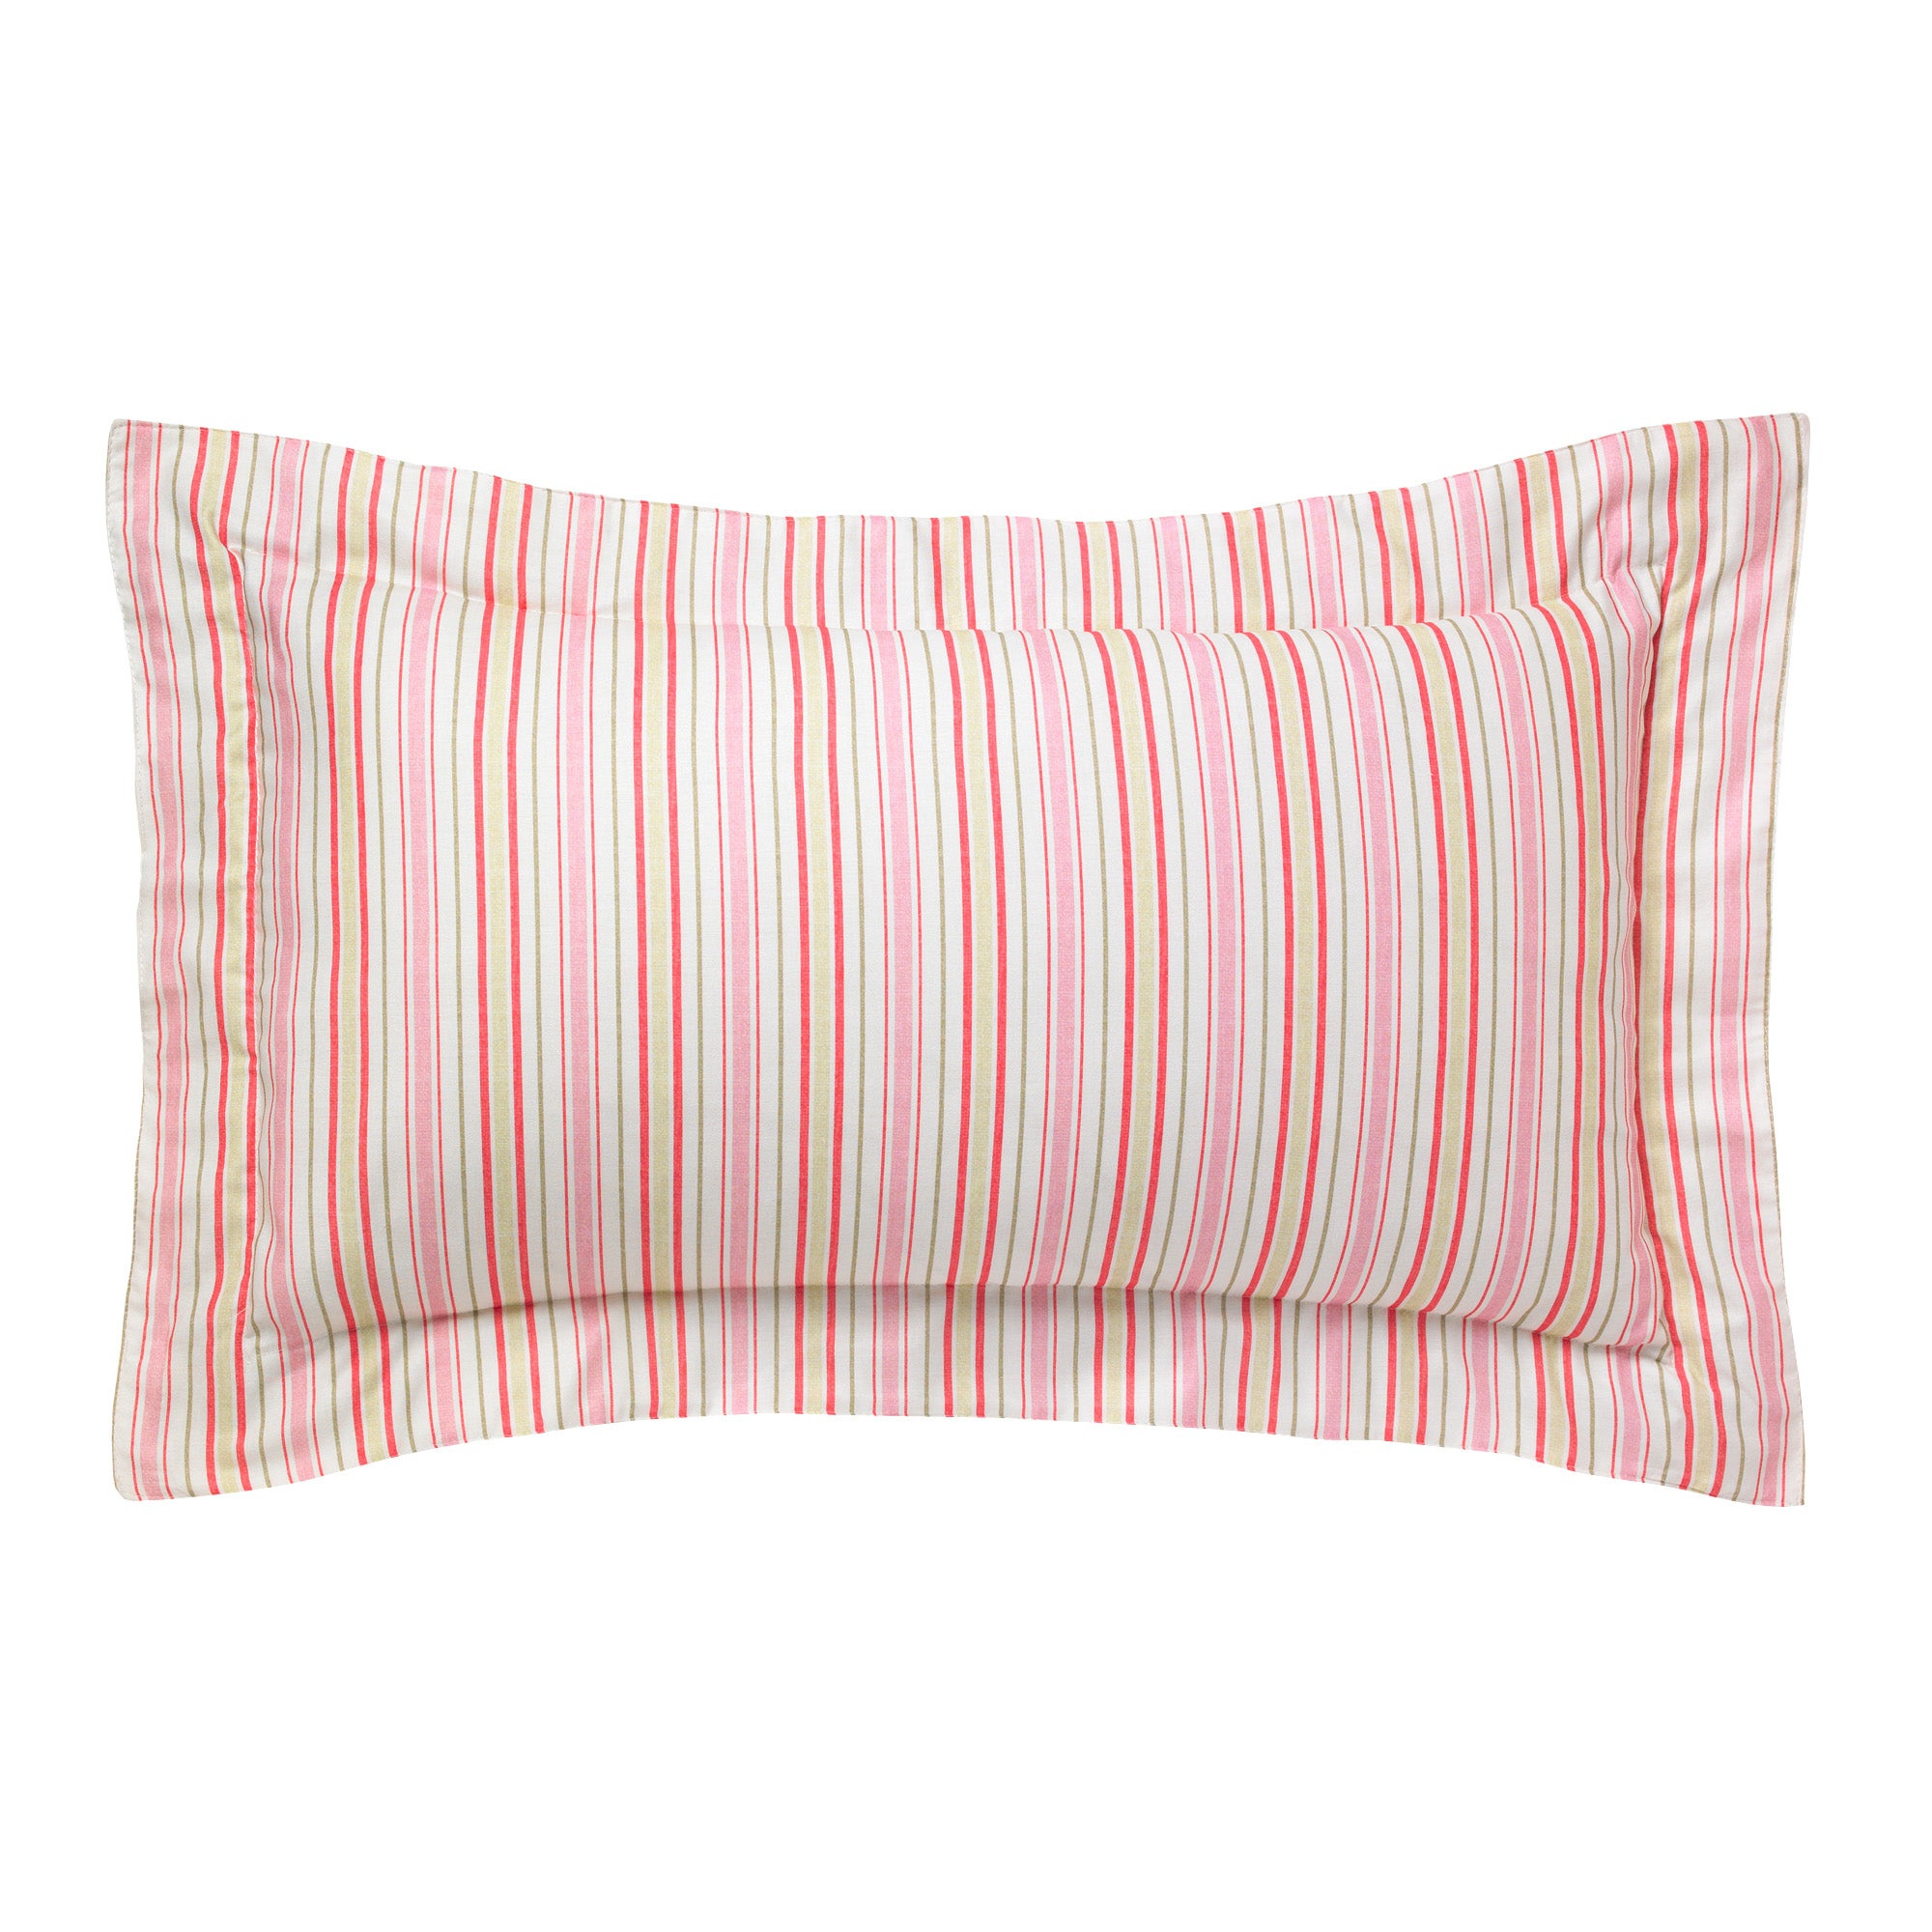 Image of Annabella Pink Oxford Pillowcase Pink